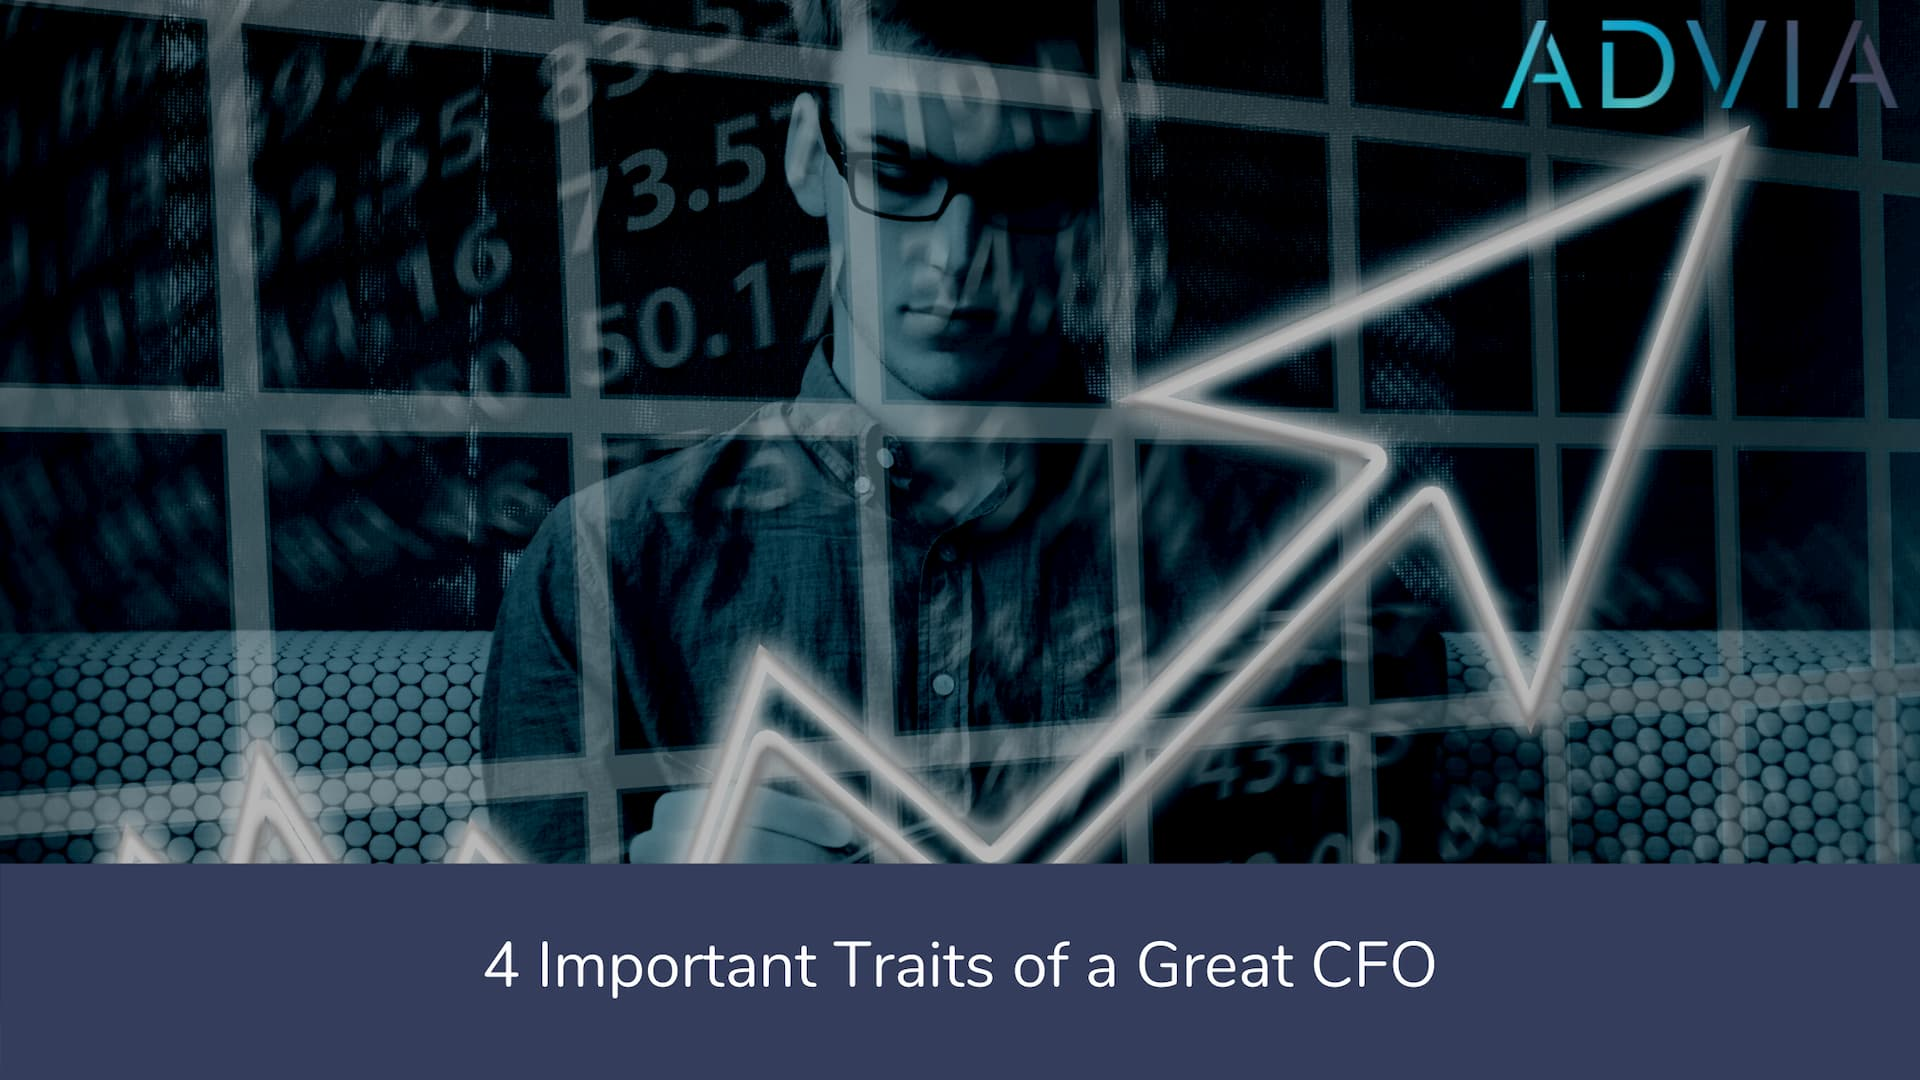 5Important_Traits_of_a_Great_CFO.jpg